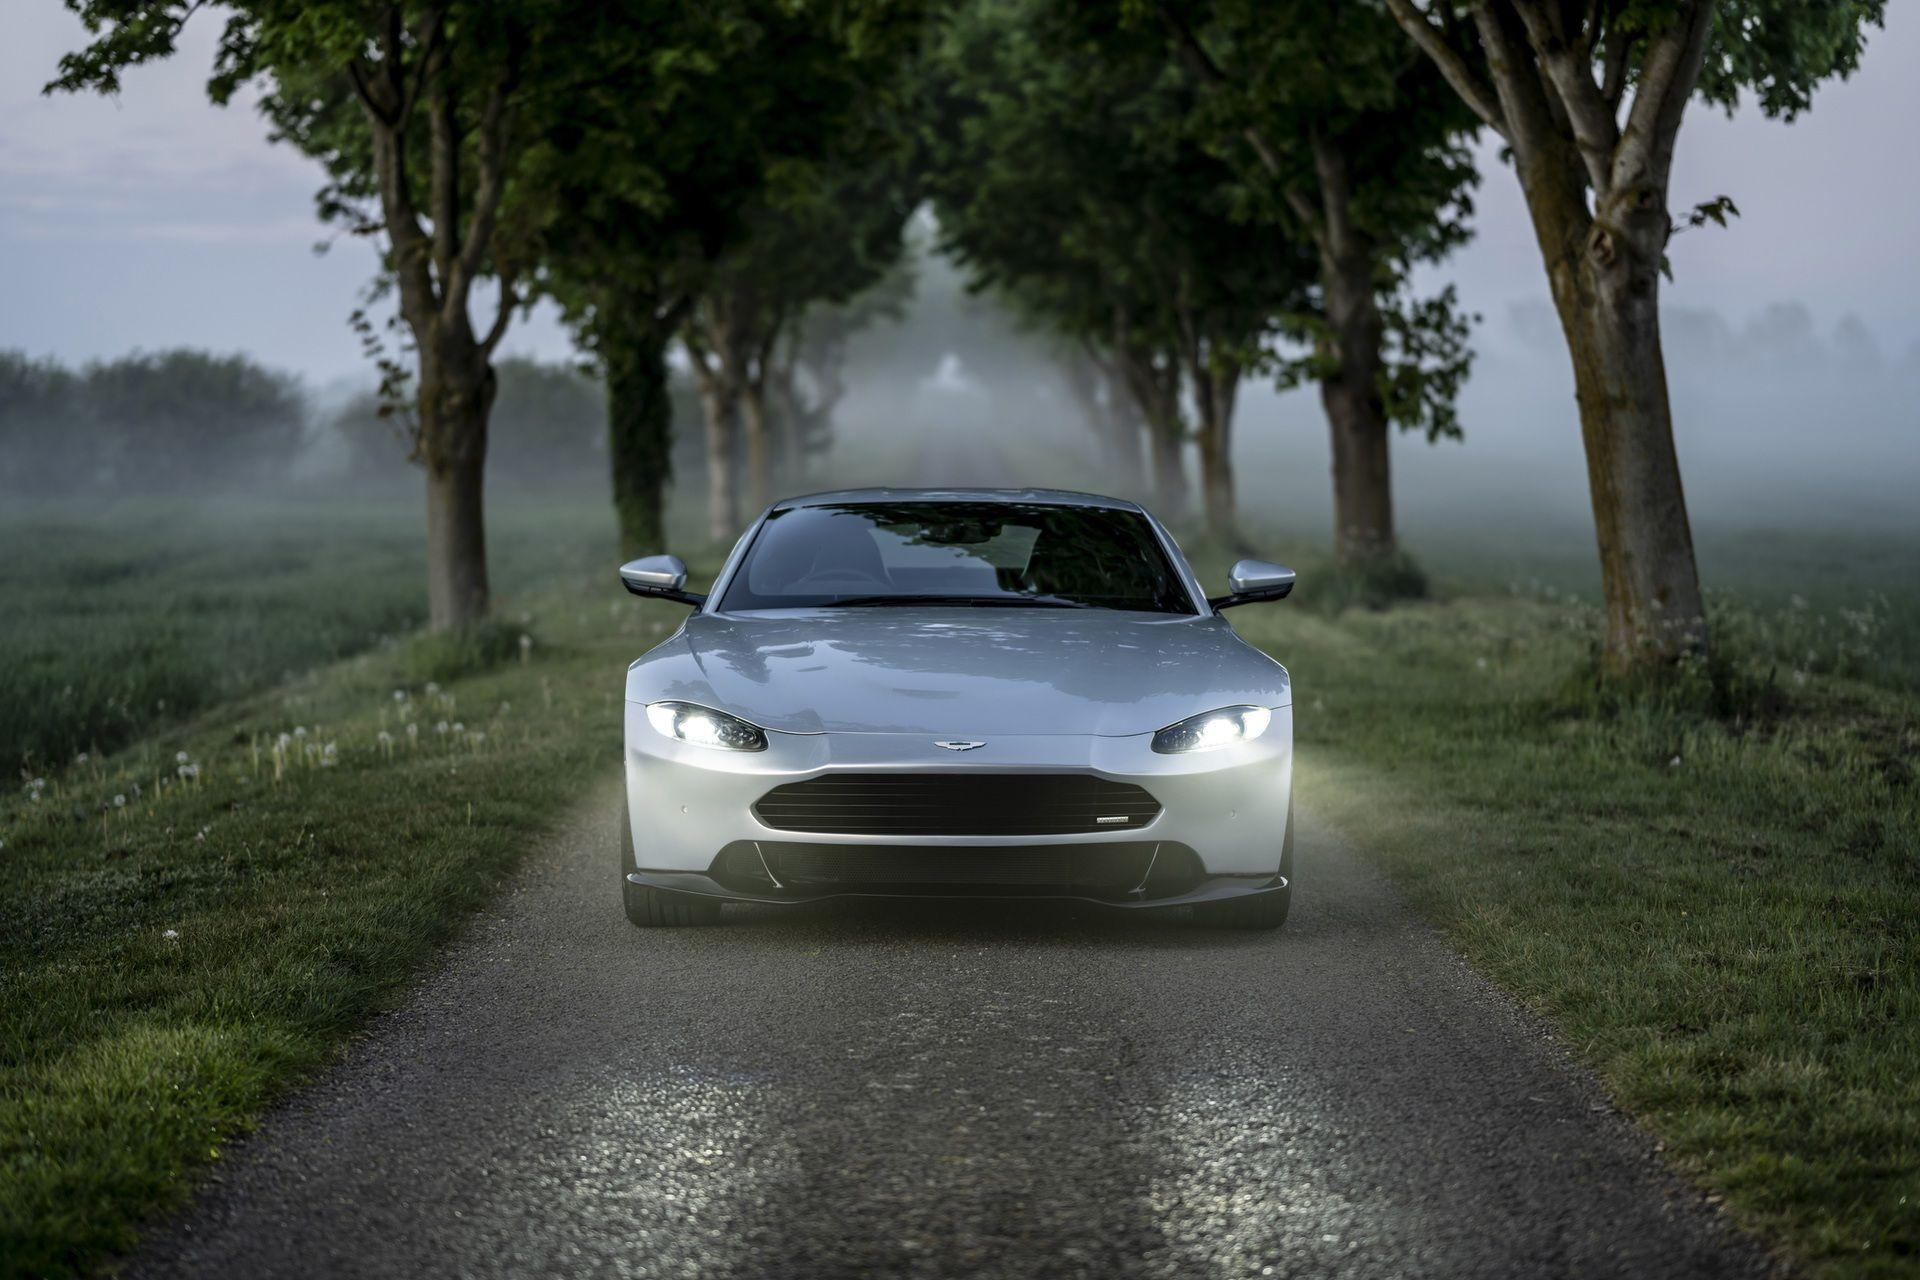 12.-Revenant-Automotive-Aston-Martin-Vantage-bumper